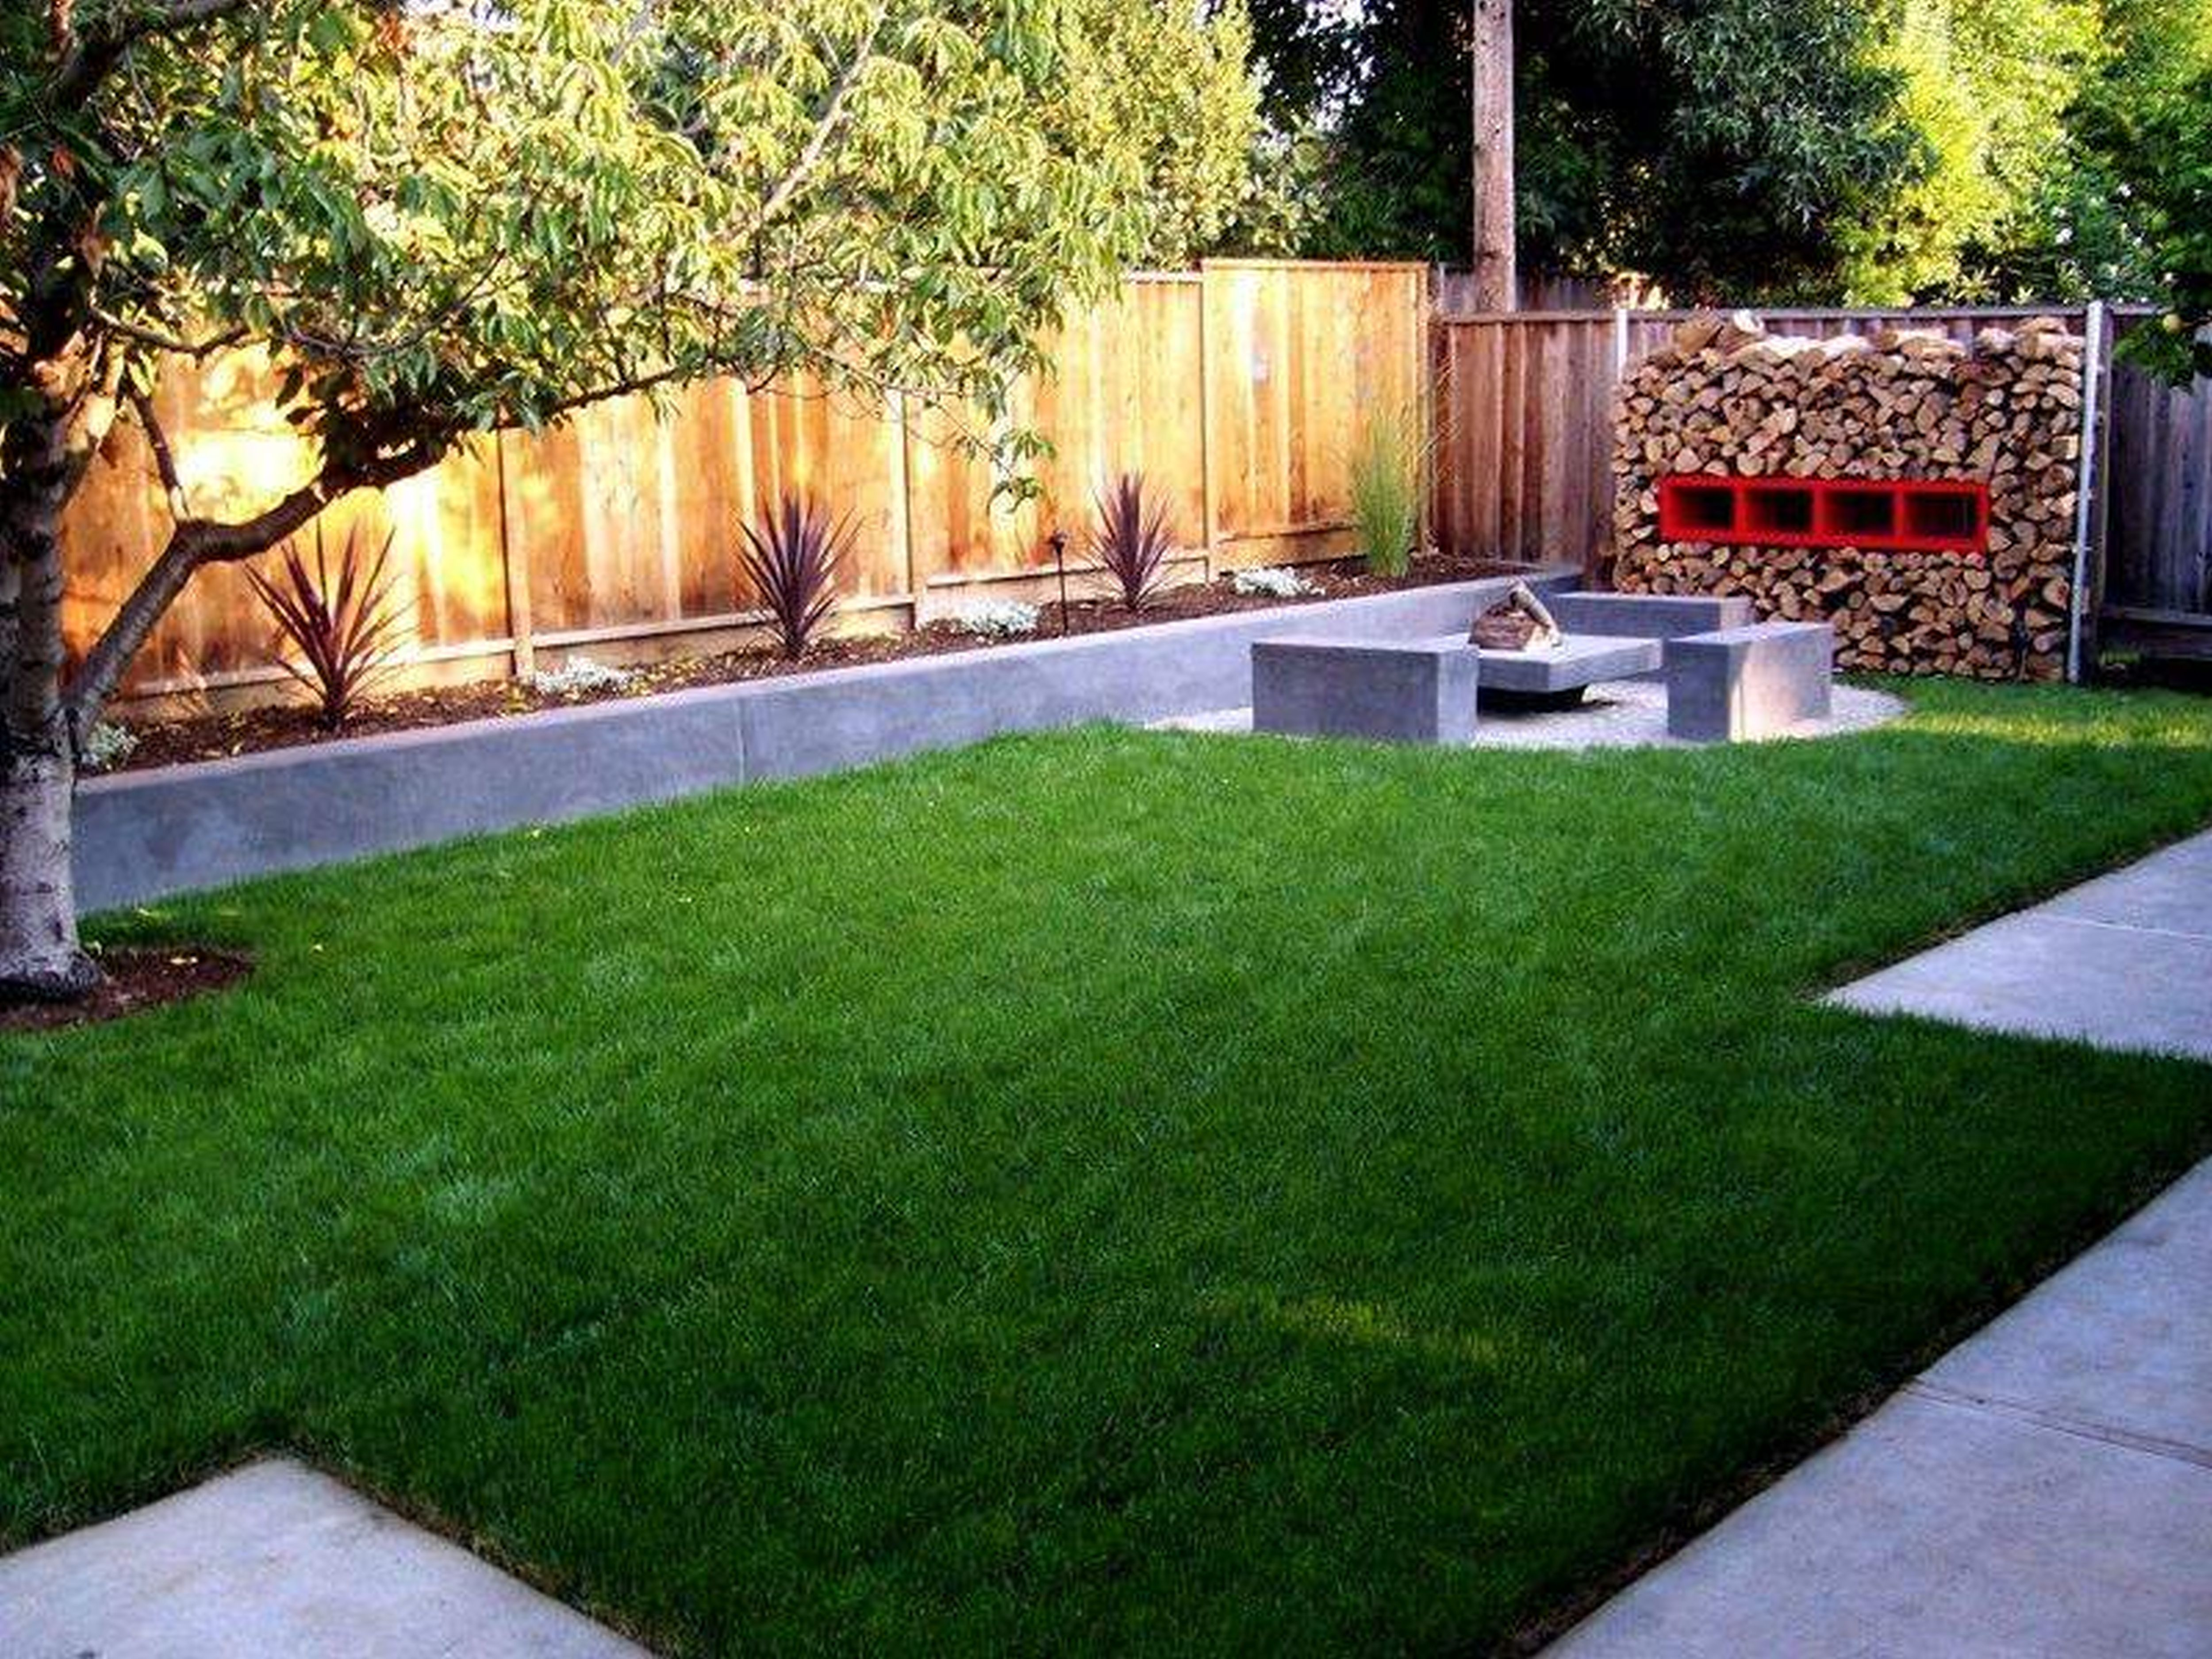 Wonderful Landscaping Ideas For Small Backyards Backyard On A Budget with regard to 11 Clever Initiatives of How to Build Backyard Landscape Designs On A Budget